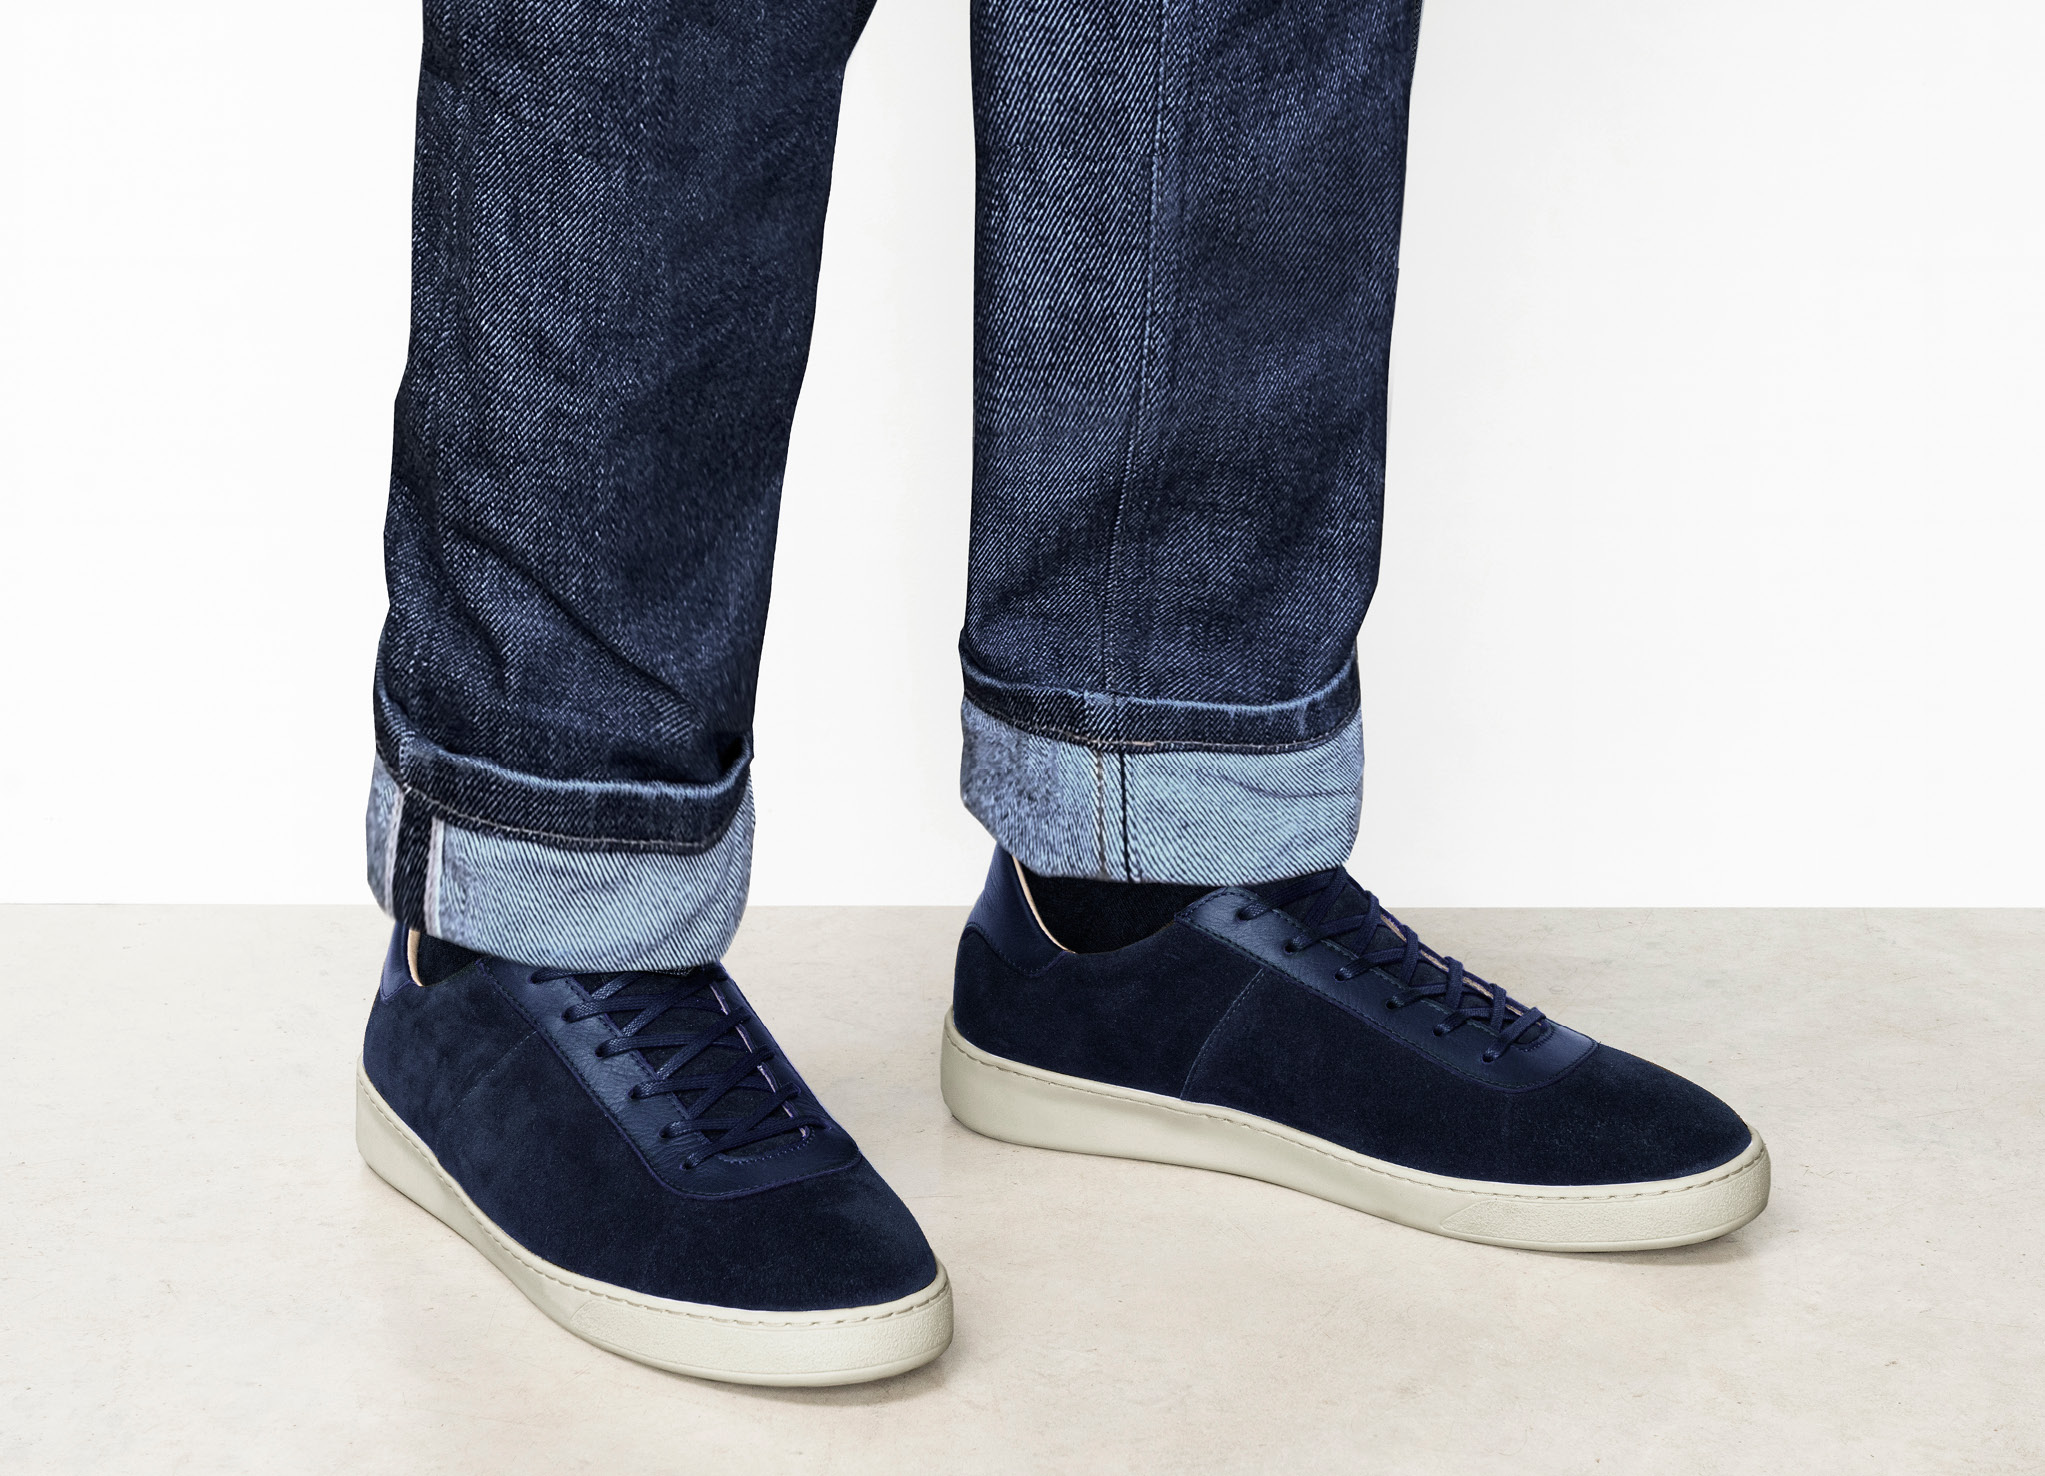 Blue Sneakers for Men   MULO Shoes